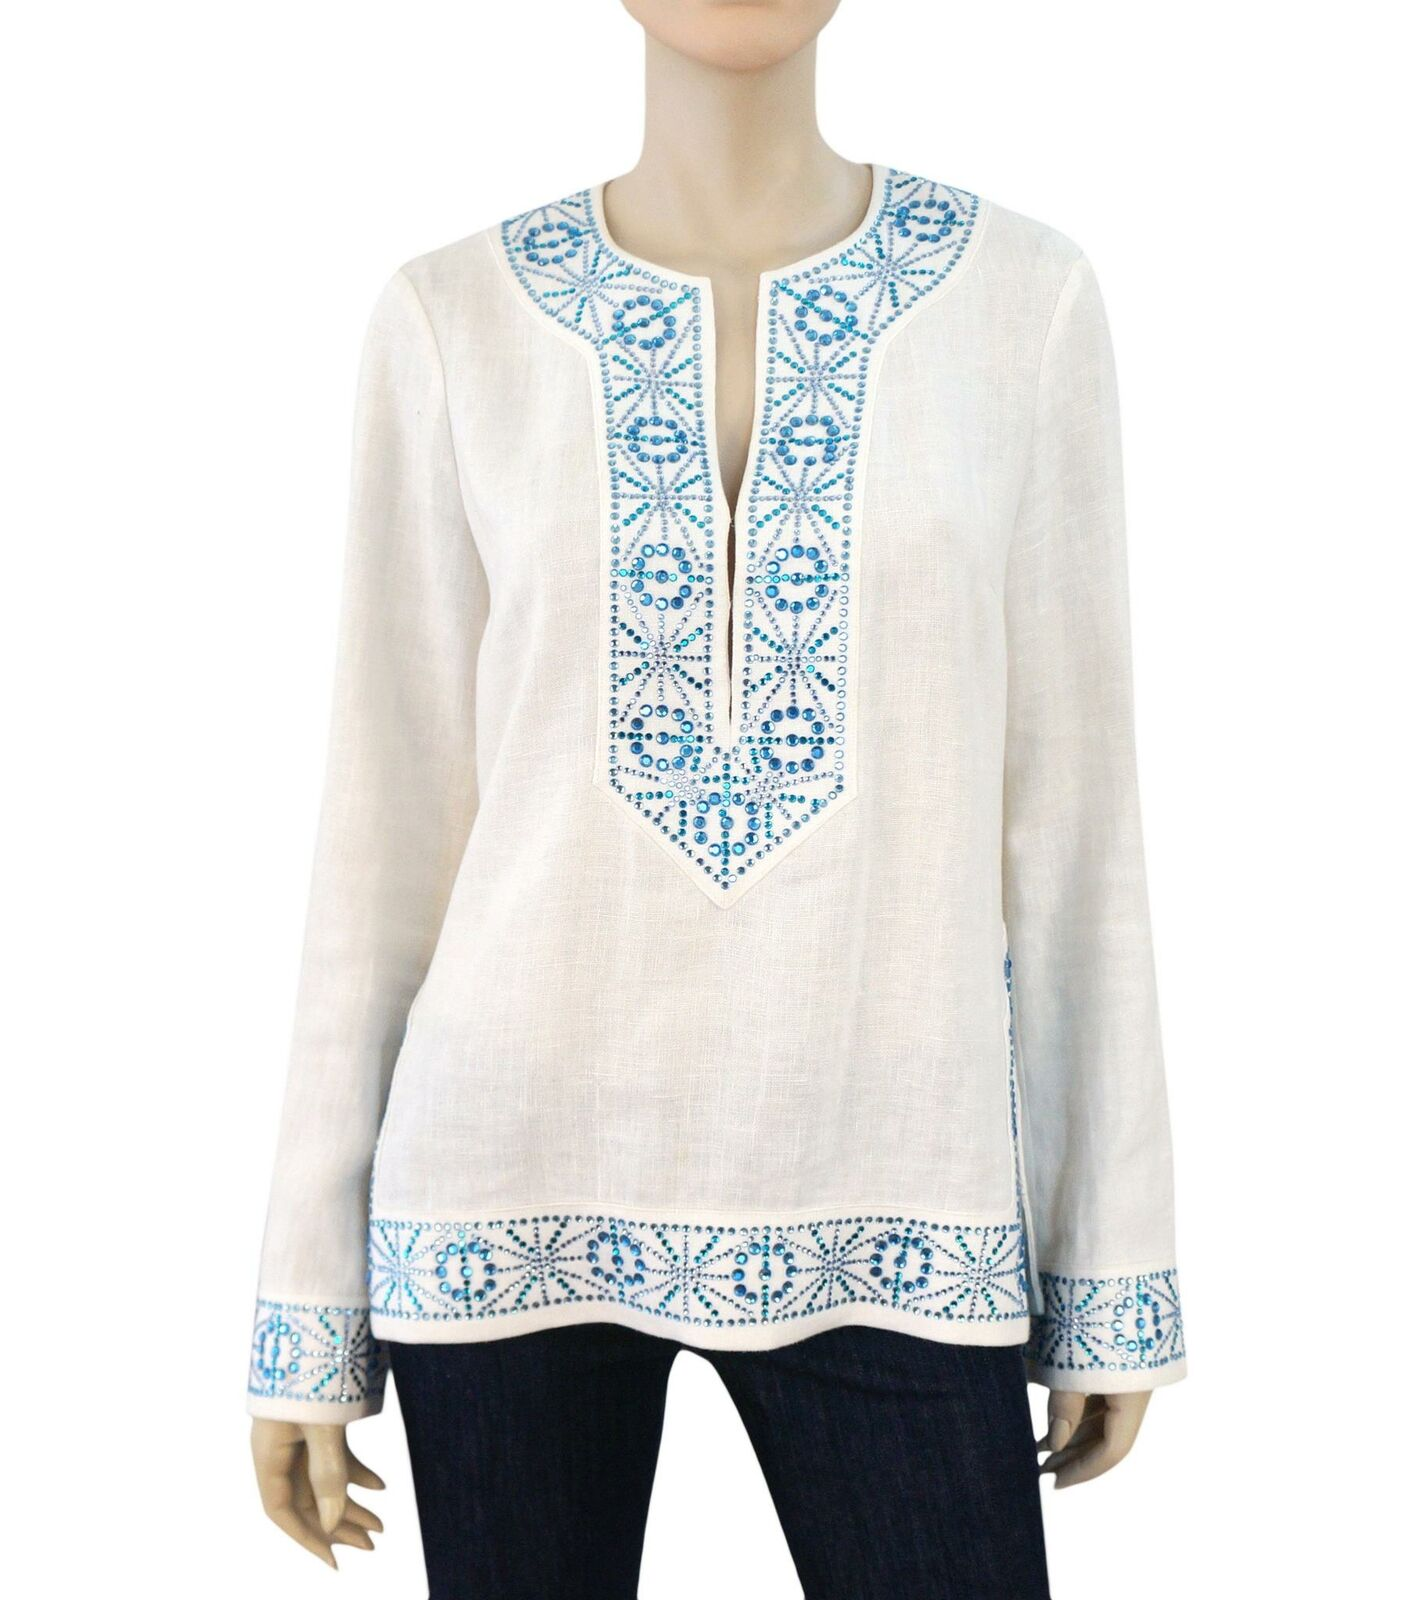 TORY BURCH Crystal Embellished Weiß Linen Tunic Top S